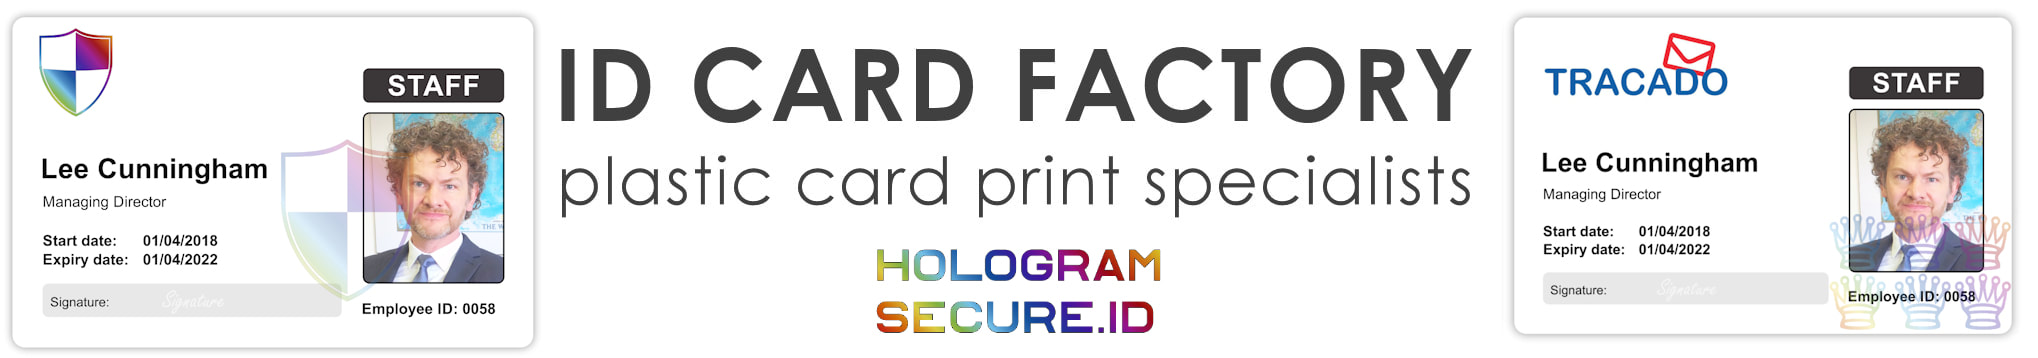 Newcastle holographic ID cards | examples of staff photo ID cards | samples of employee Identity card printing | Workers ID cards printed with hologram